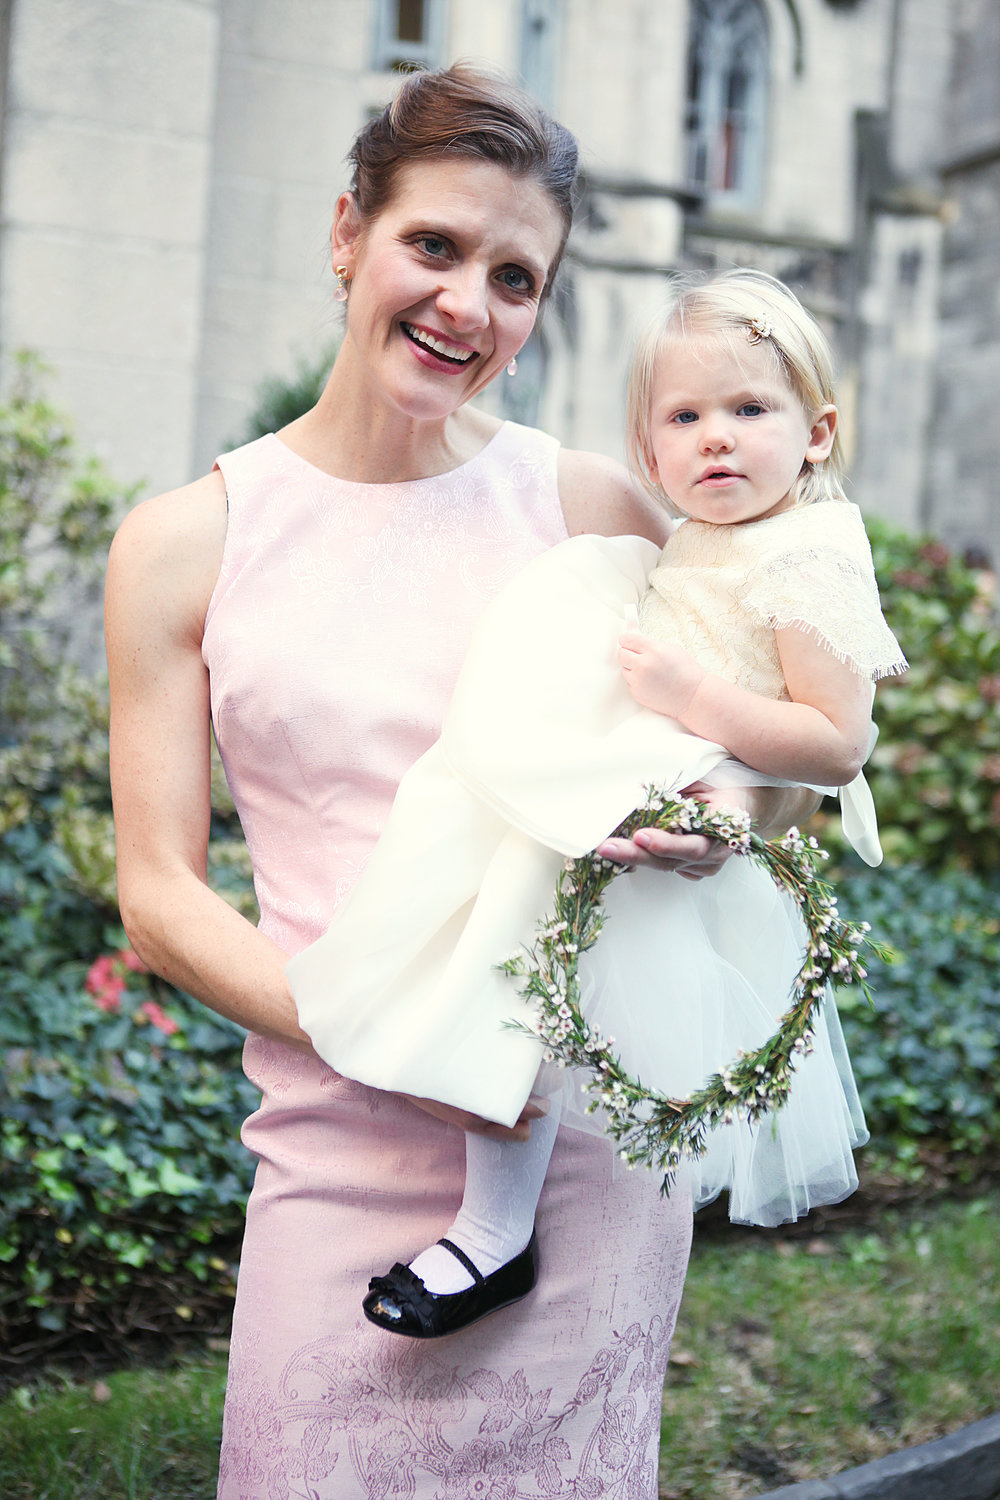 Bridesmaid and Flower girl dresses by KRISTI VOSBECK